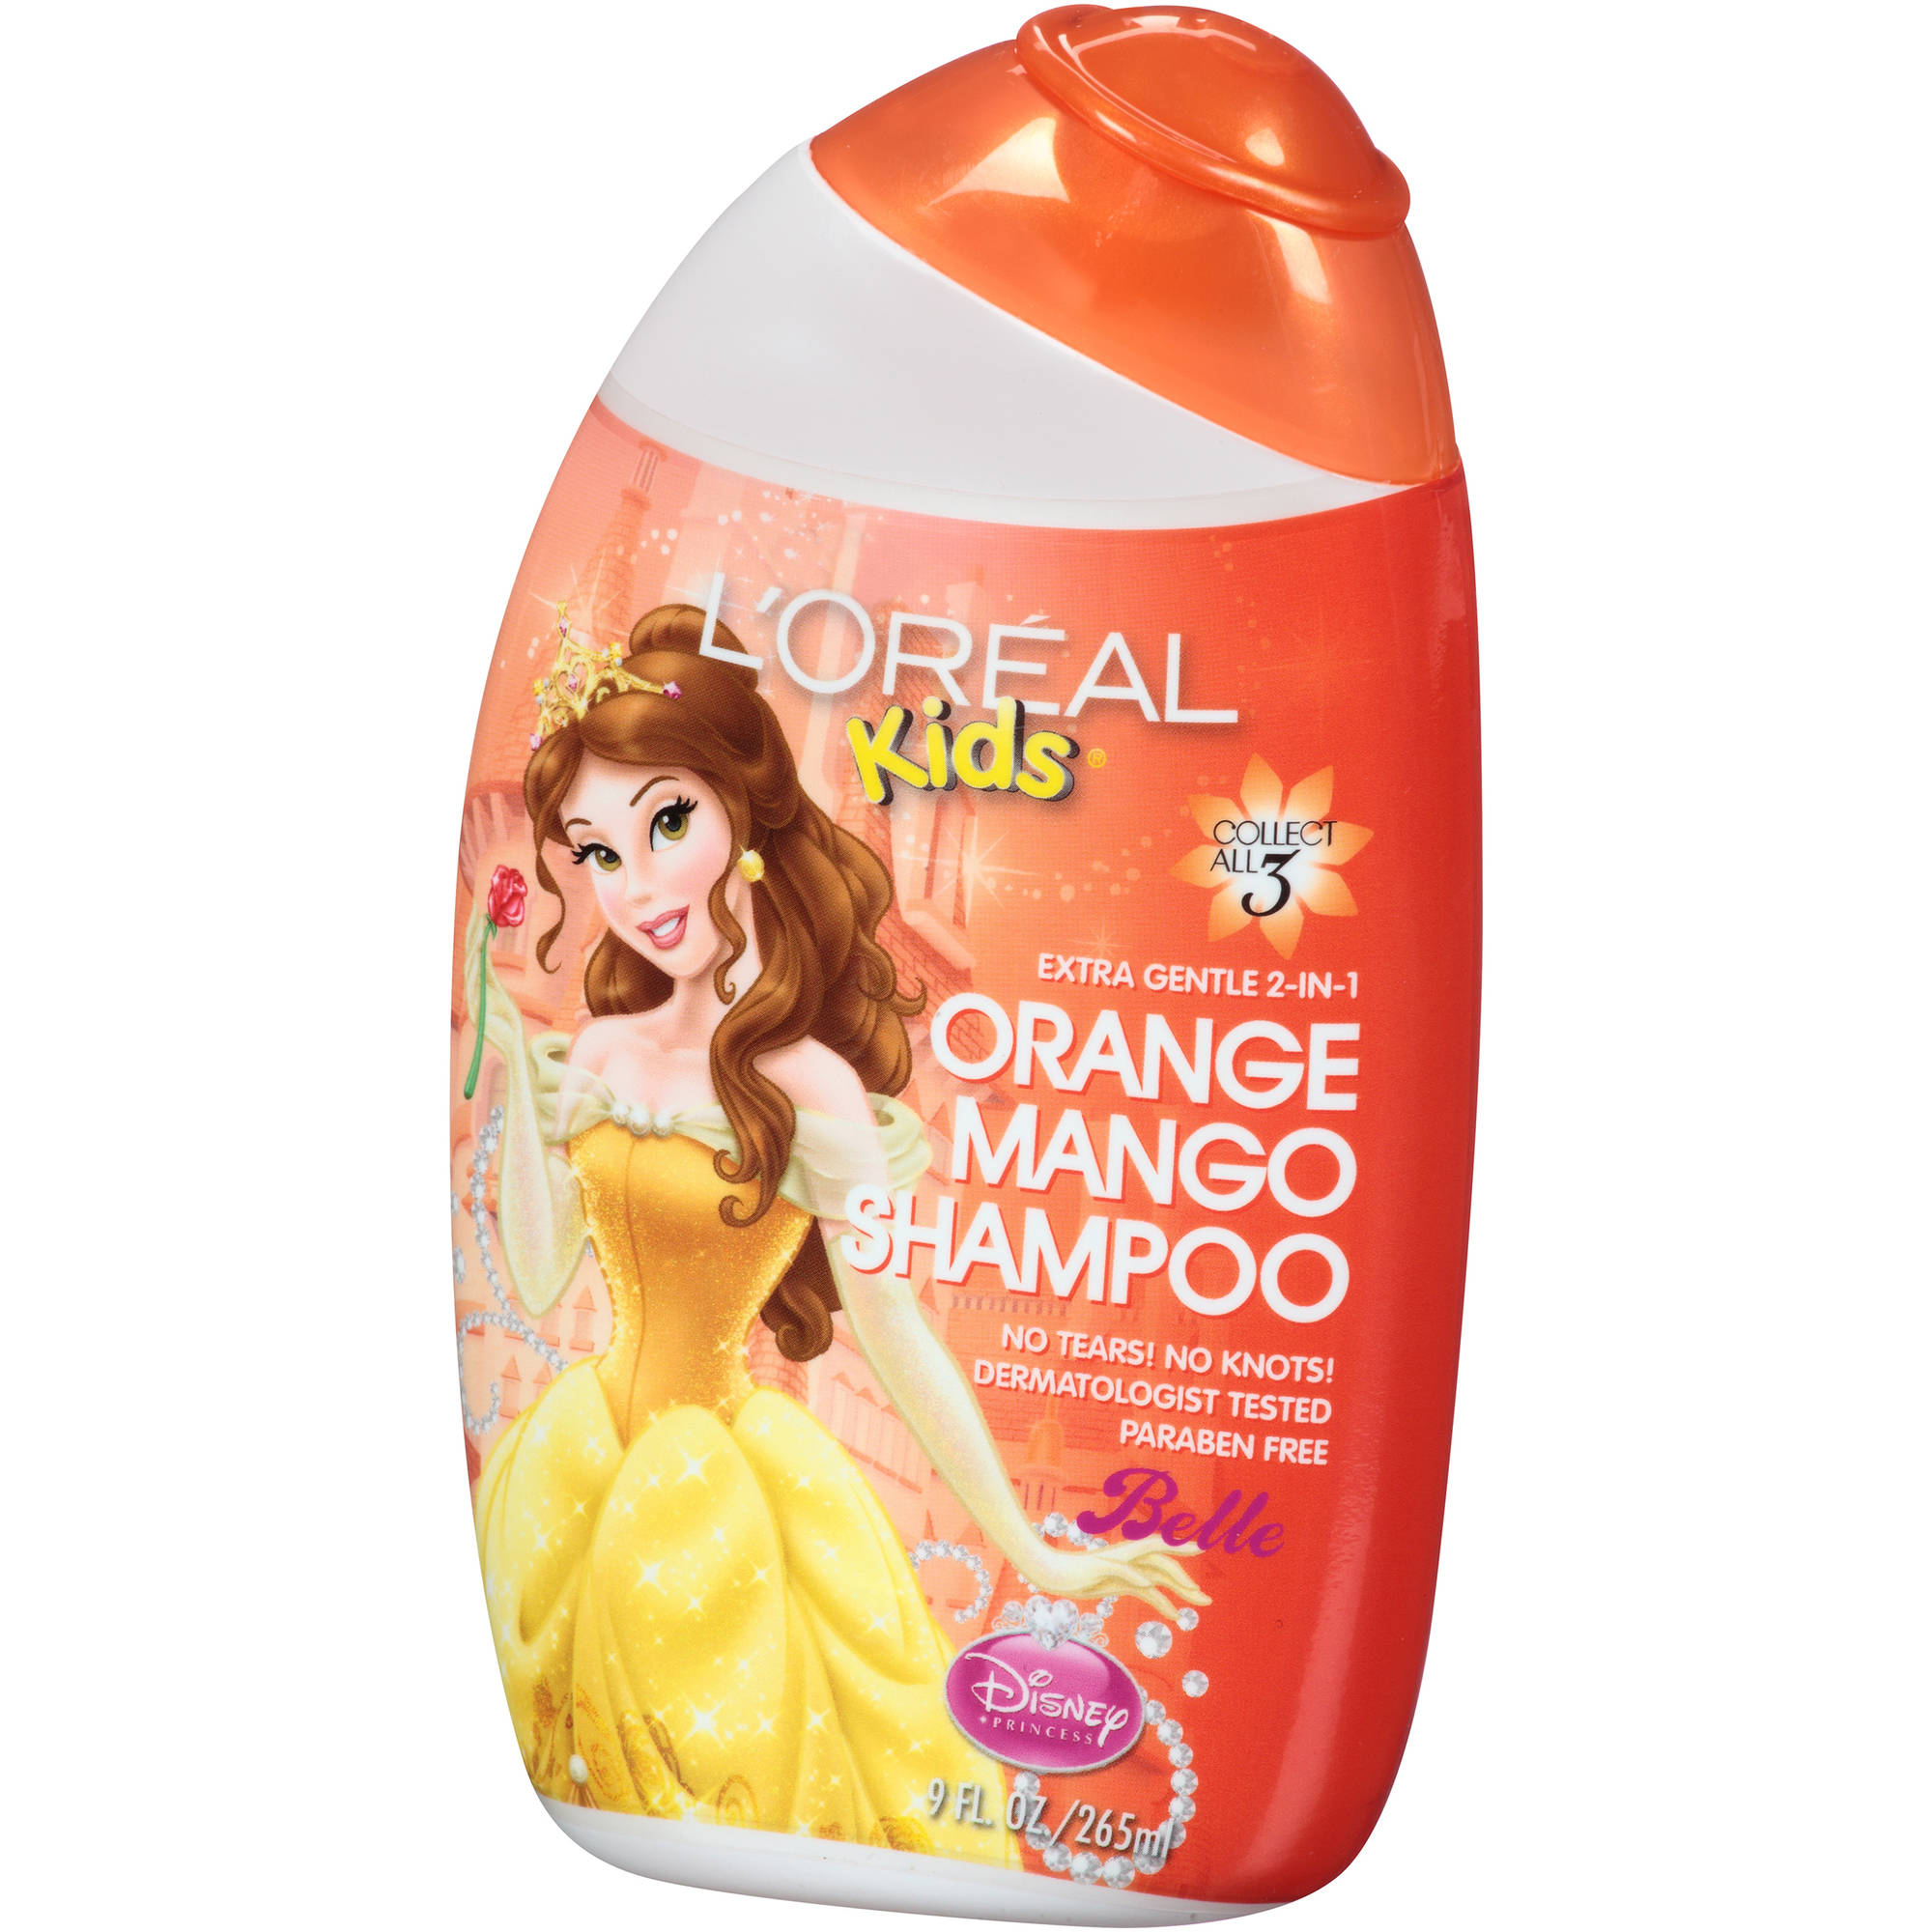 Loreal No More Tears Bath Time Fun W L Oreal Kids Toy Story 3 2 In 1 Shampoo Sunny Orange 265ml Paris Disney Princess Belle Extra Gentle